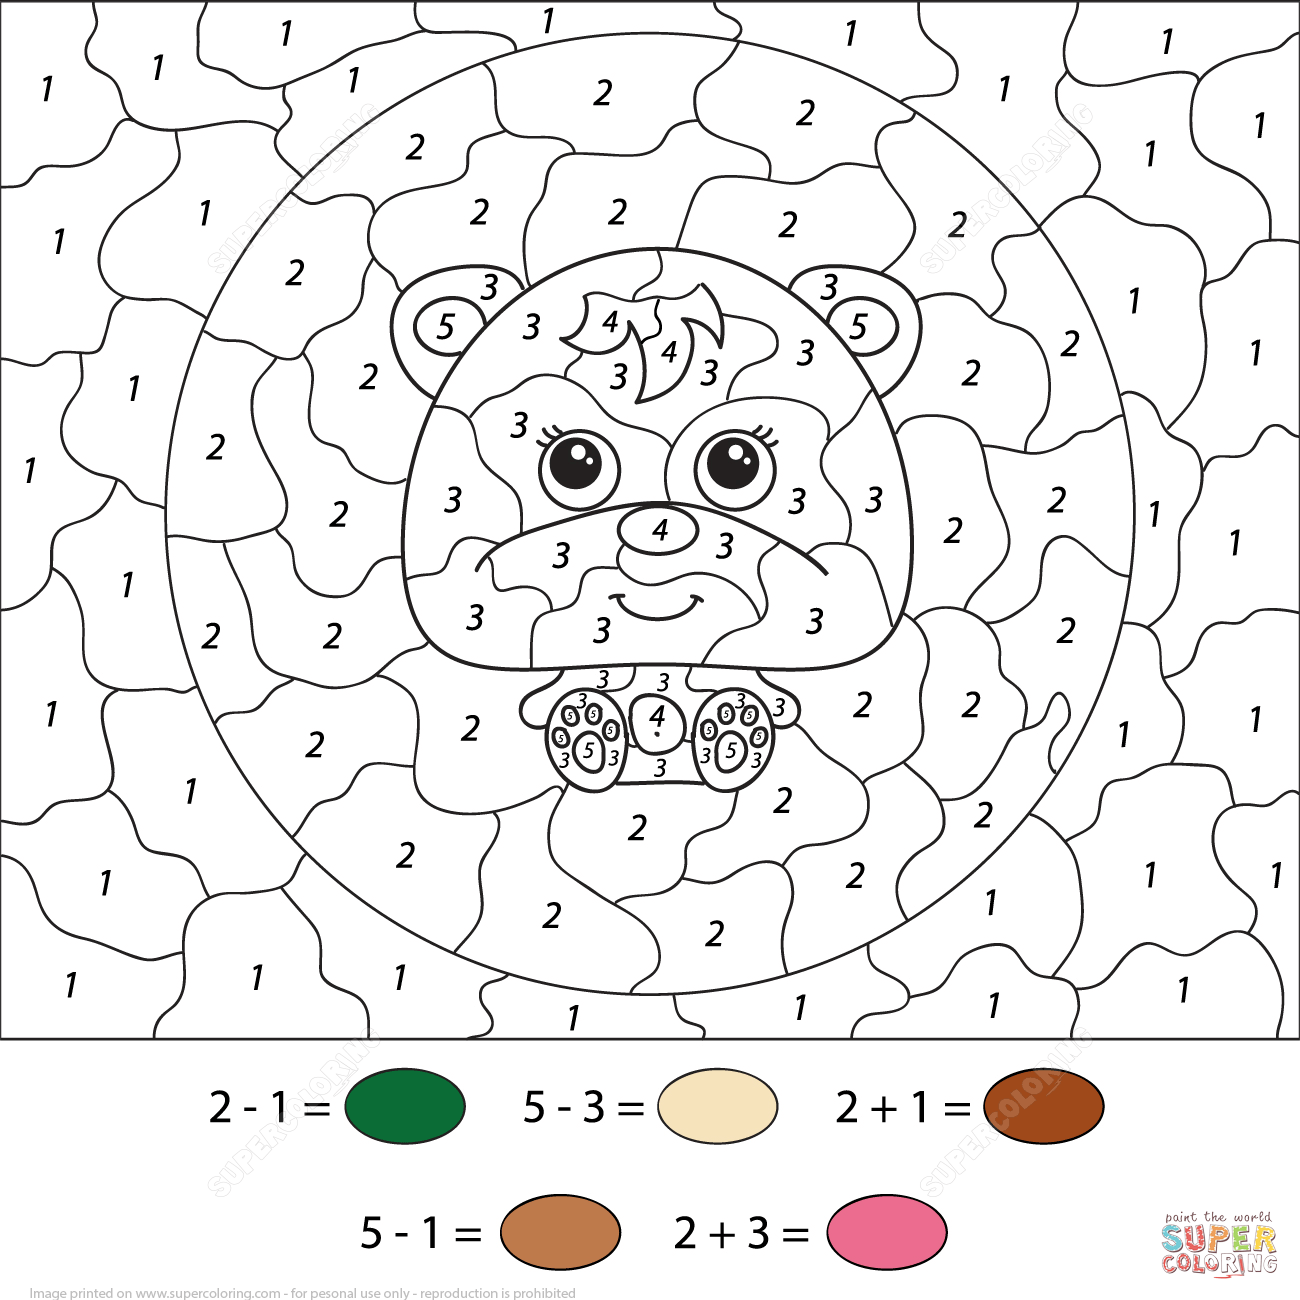 Worksheet Coloring Pages At Getcolorings